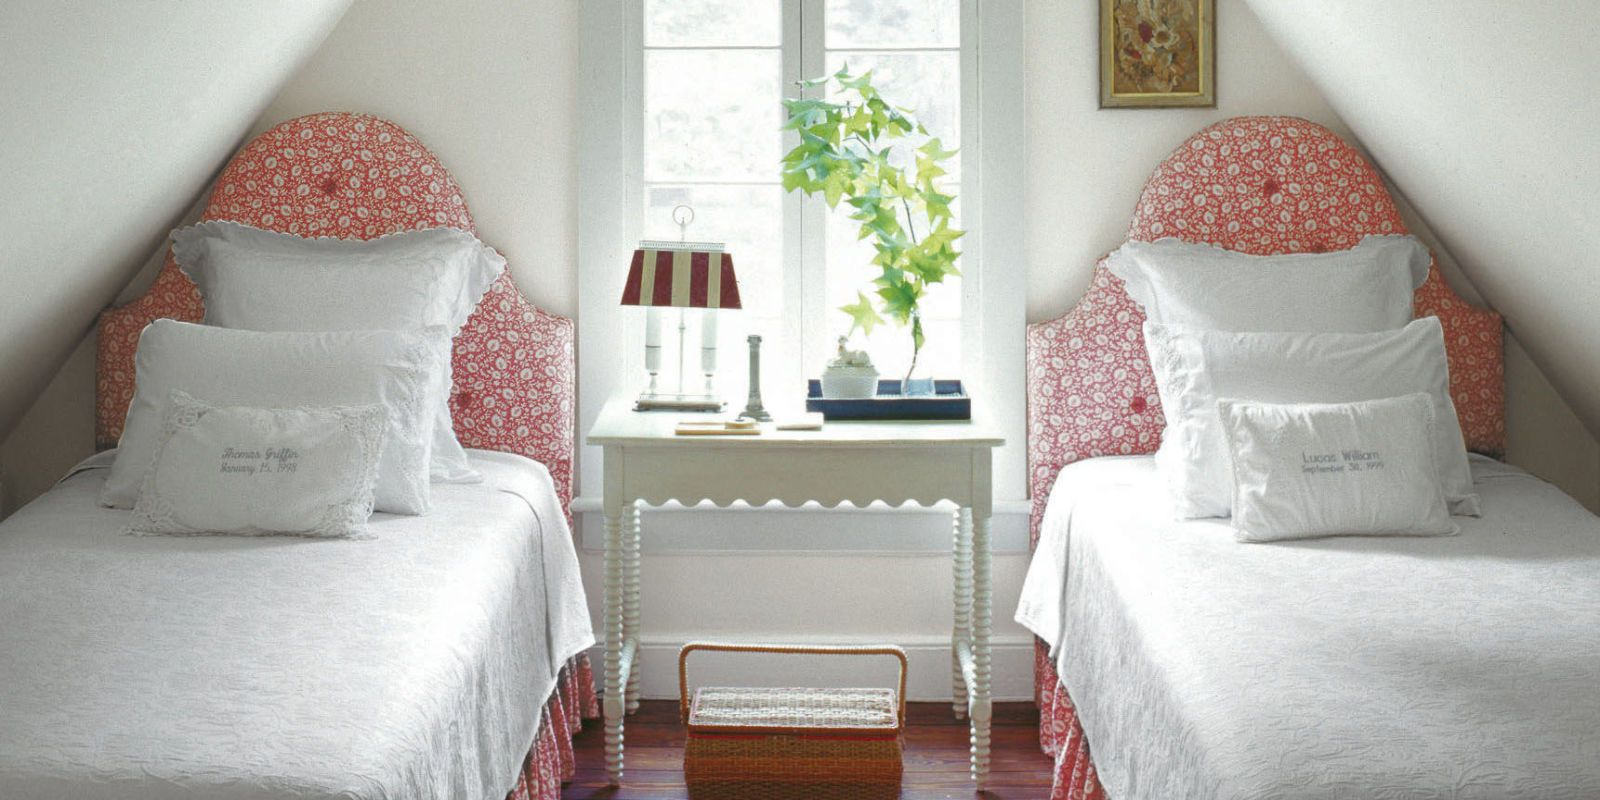 Charmant Small Bedroom Ideas